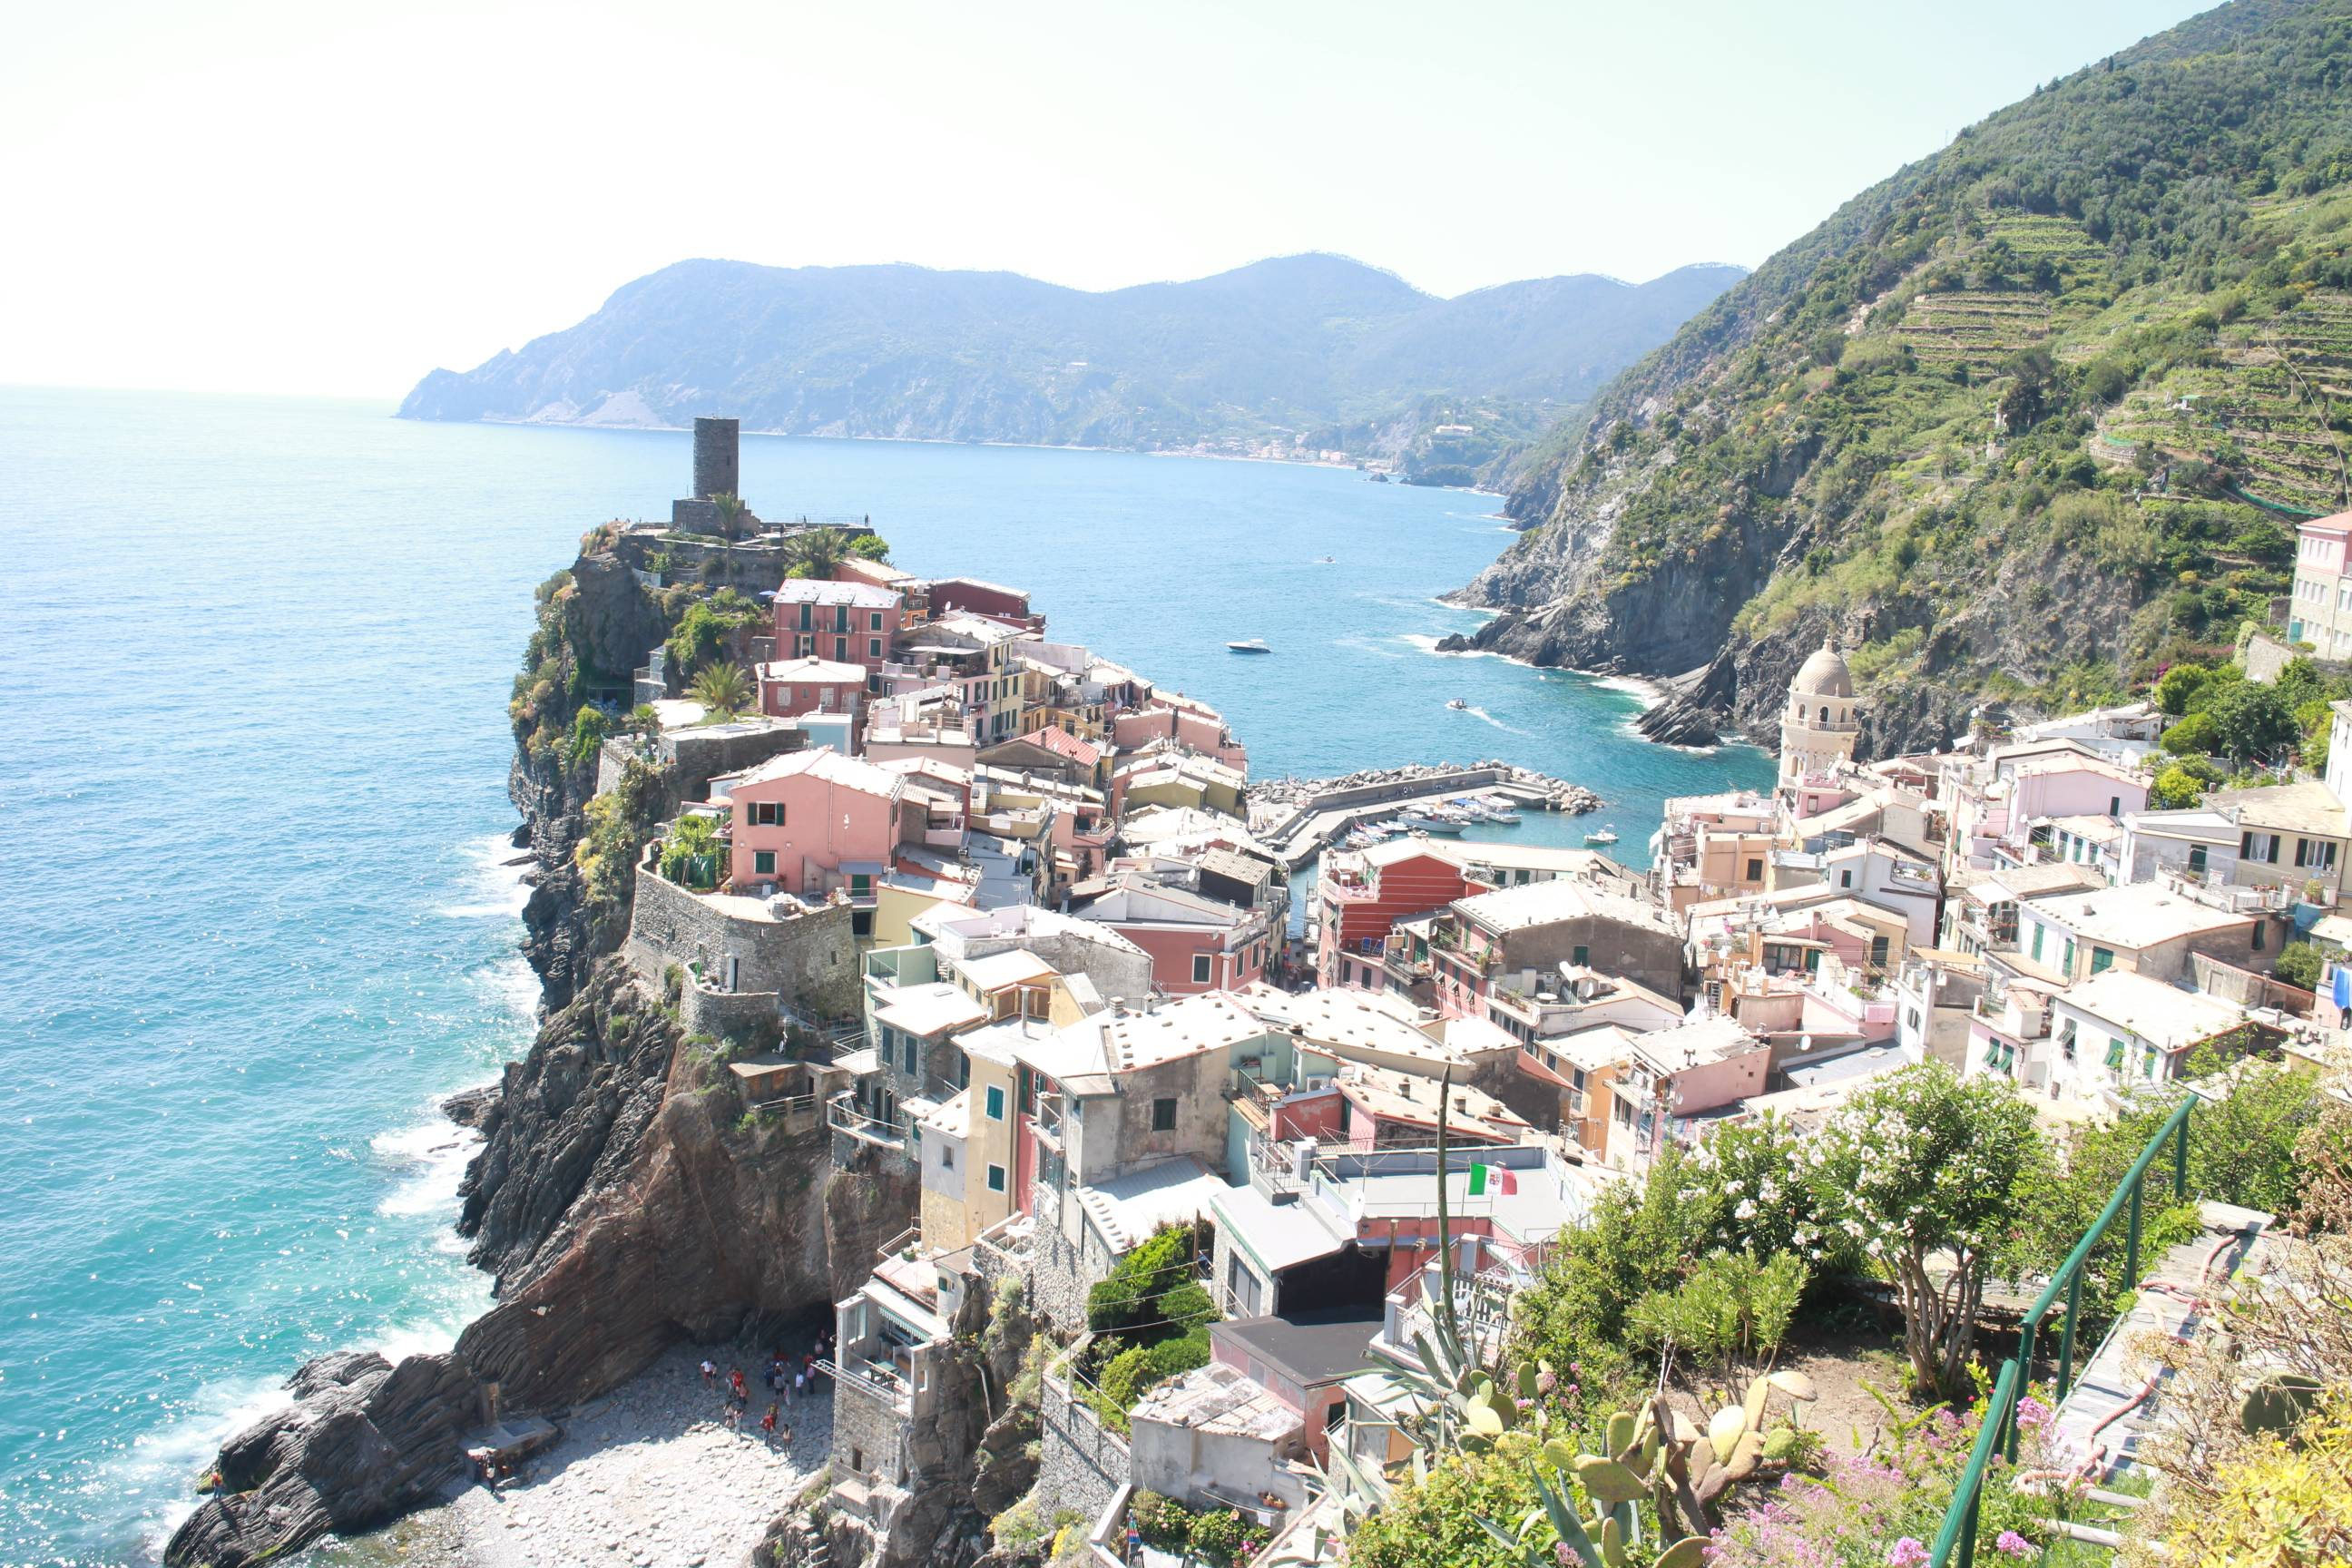 Photo 1: Les cinque terre, 5 villages de rêve en Italie